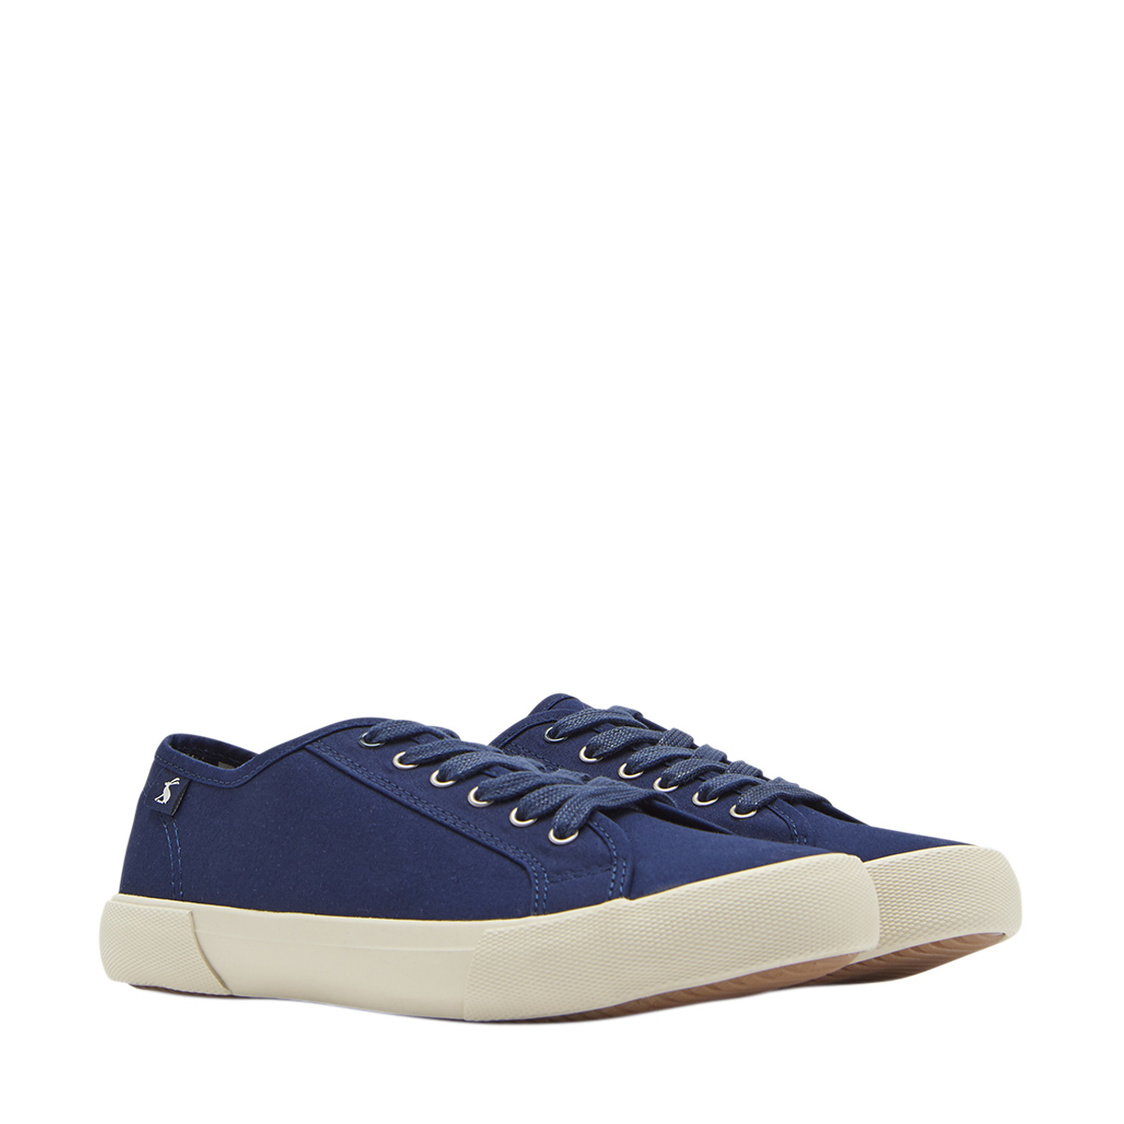 Coast Pump Canvas Lace Up Sneakers French Navy